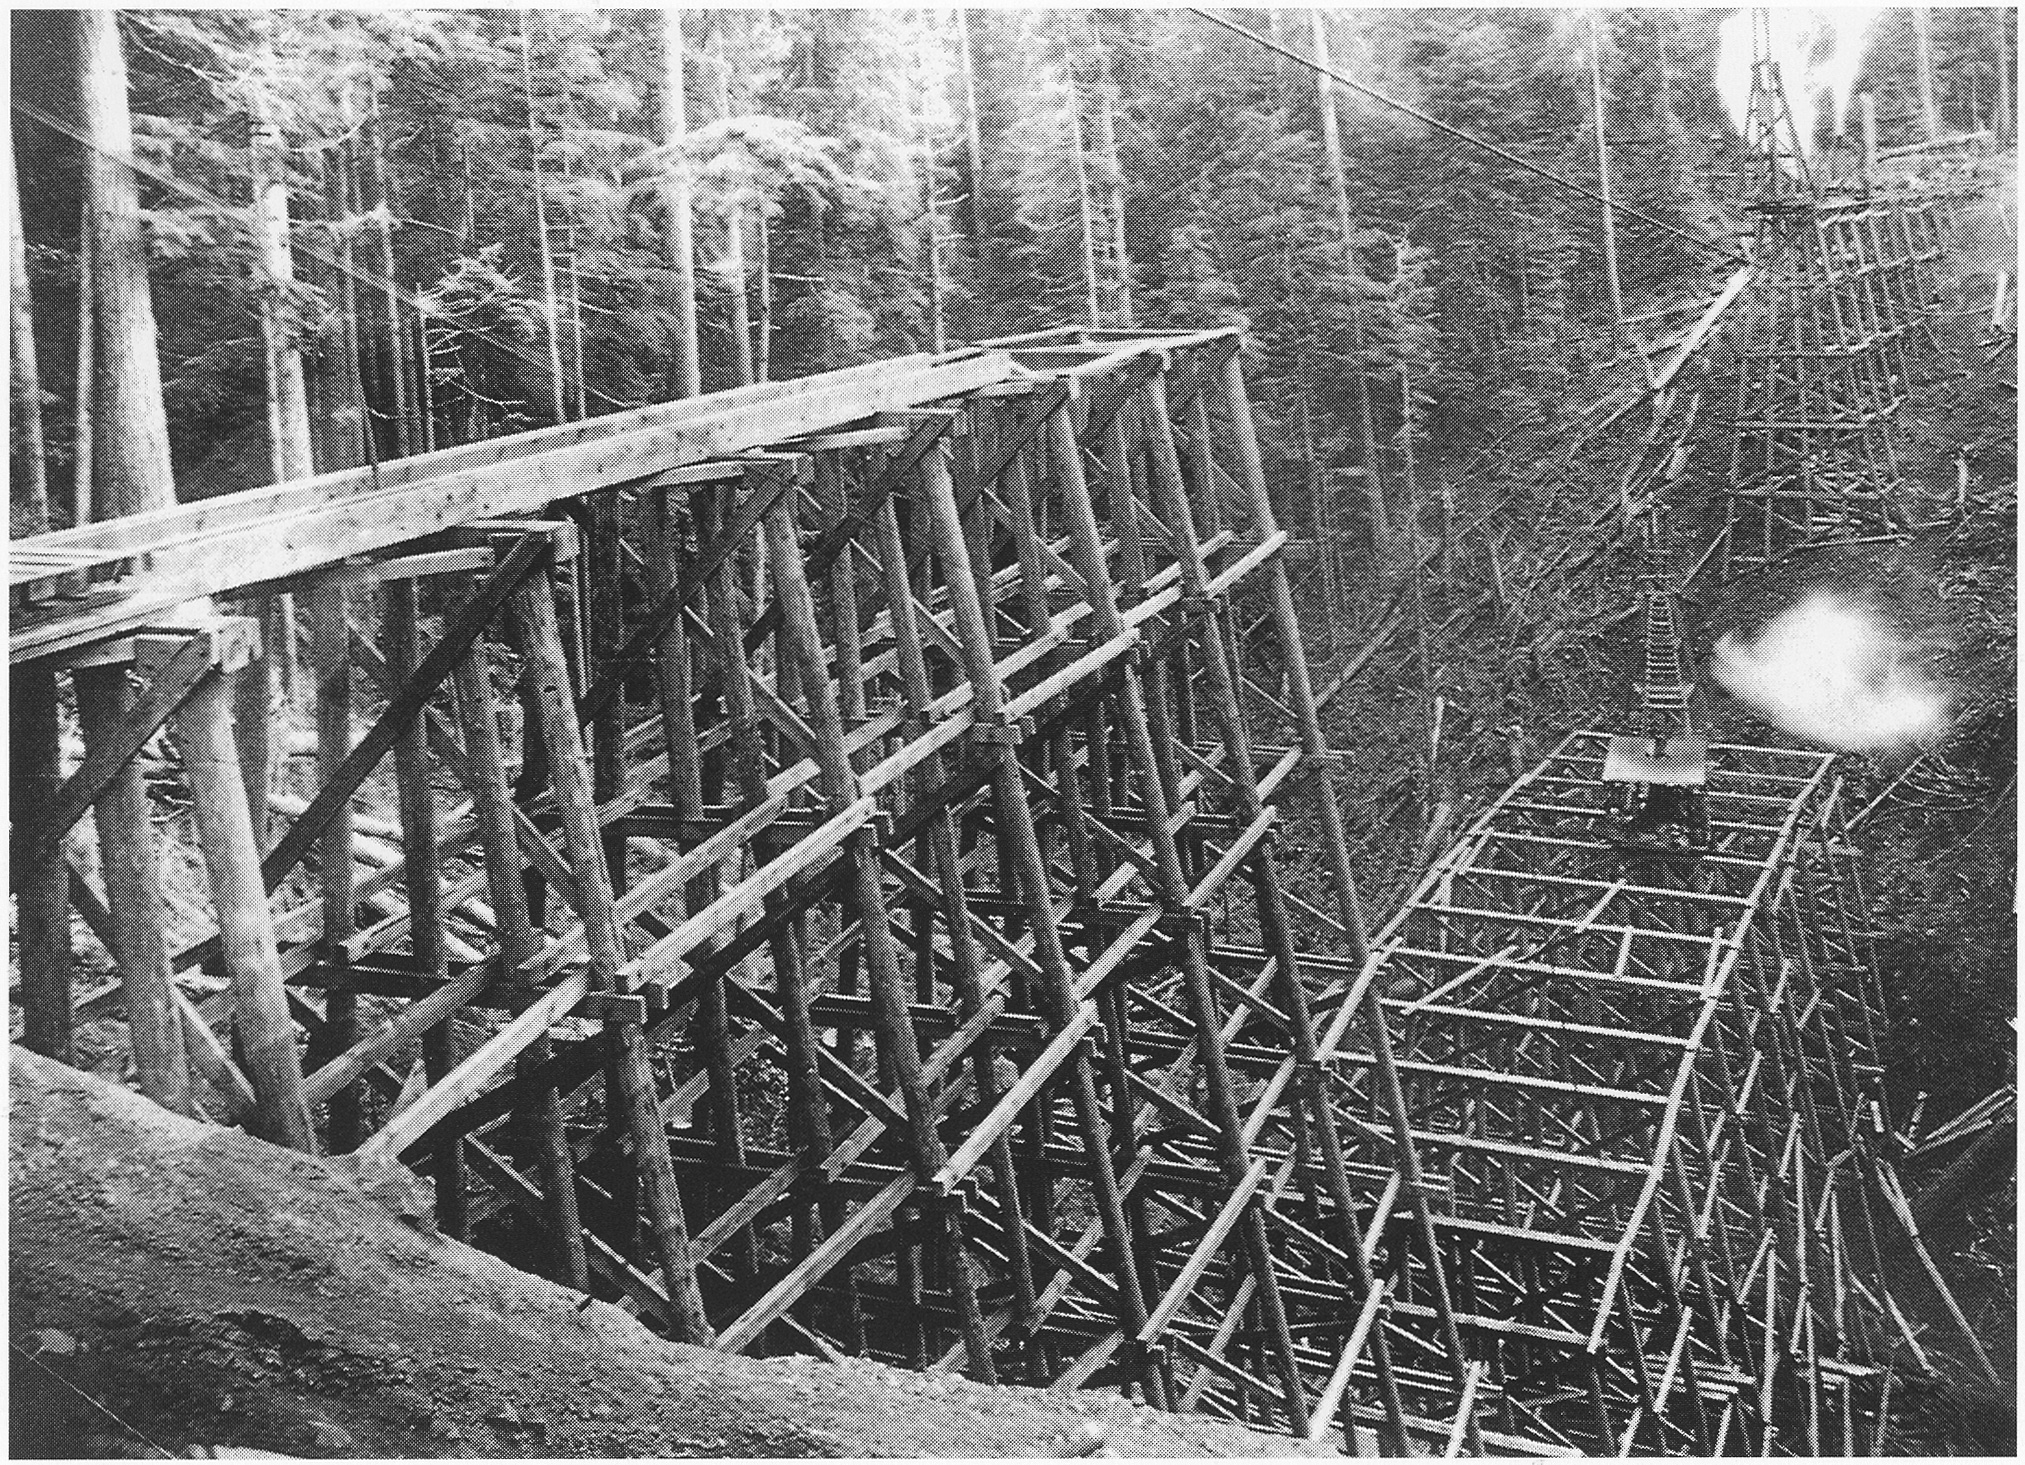 Workers finished building the Pacific Railway & Navigation line in 1911. One of the final projects was the Big Baldwin trestle—520 feet long and 167 feet high. (Tillamook Pioneer Museum Collection)